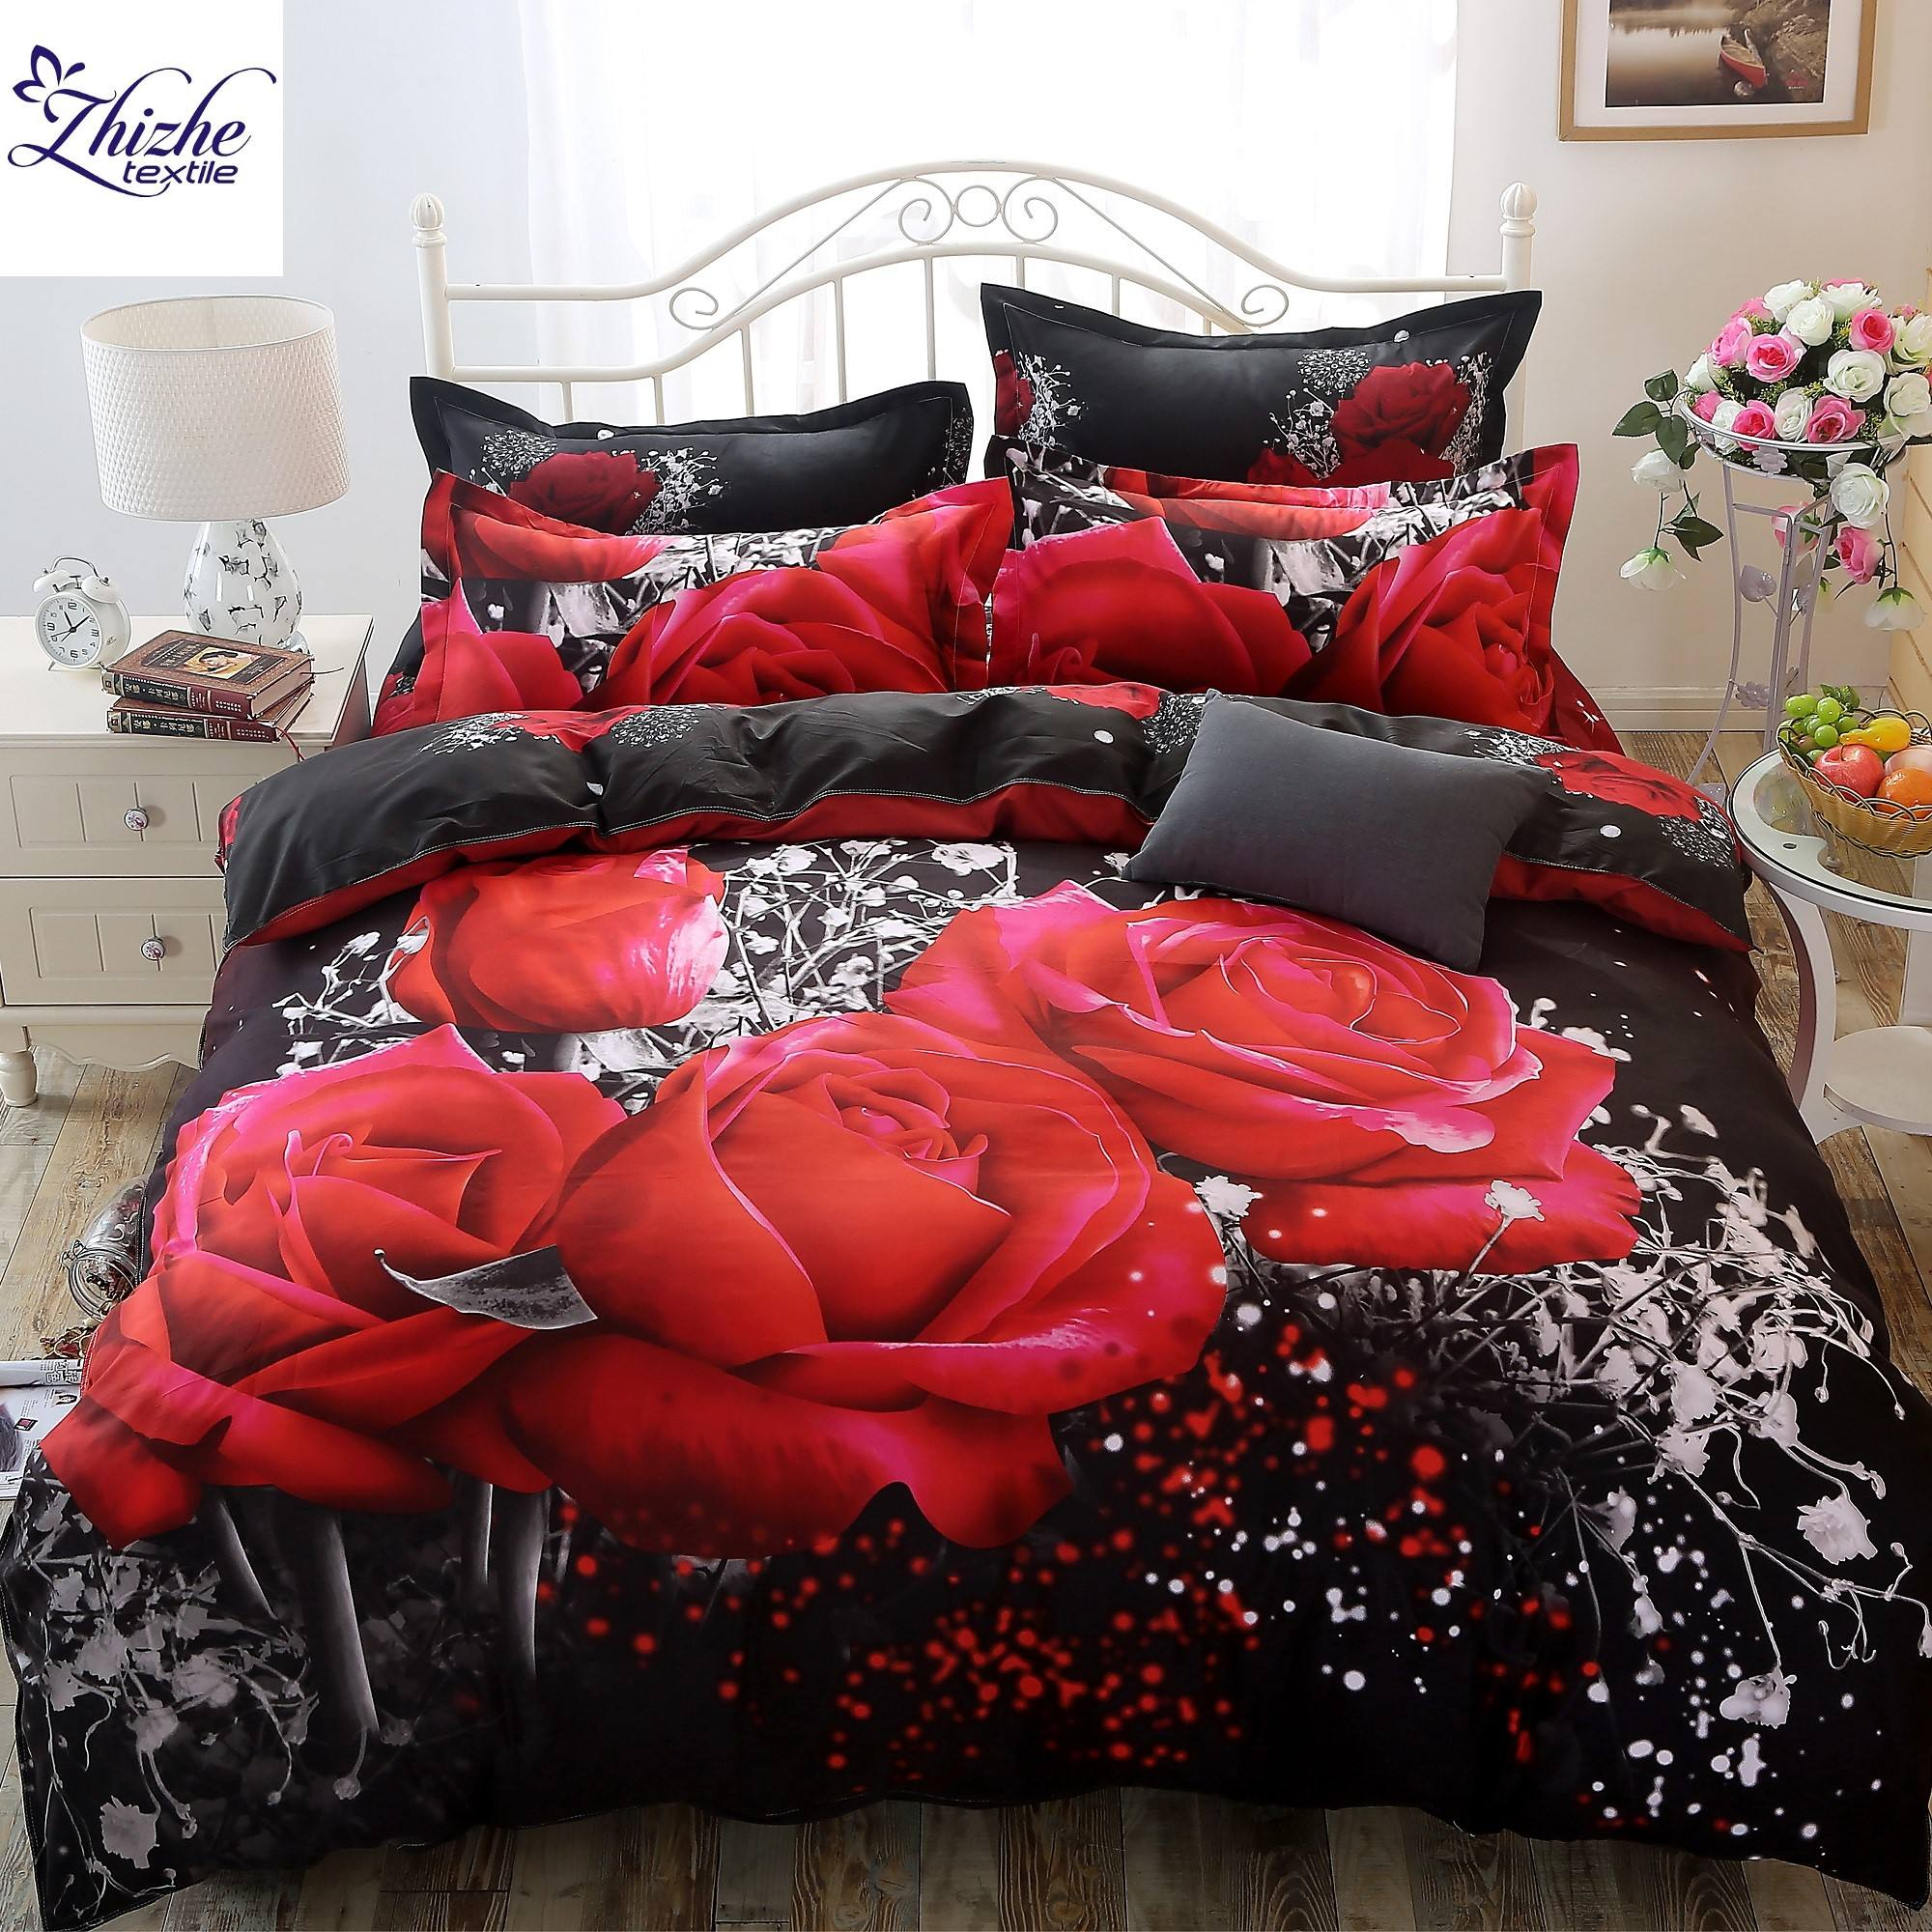 3D Style big red rose print polyester bedding set ready to ship